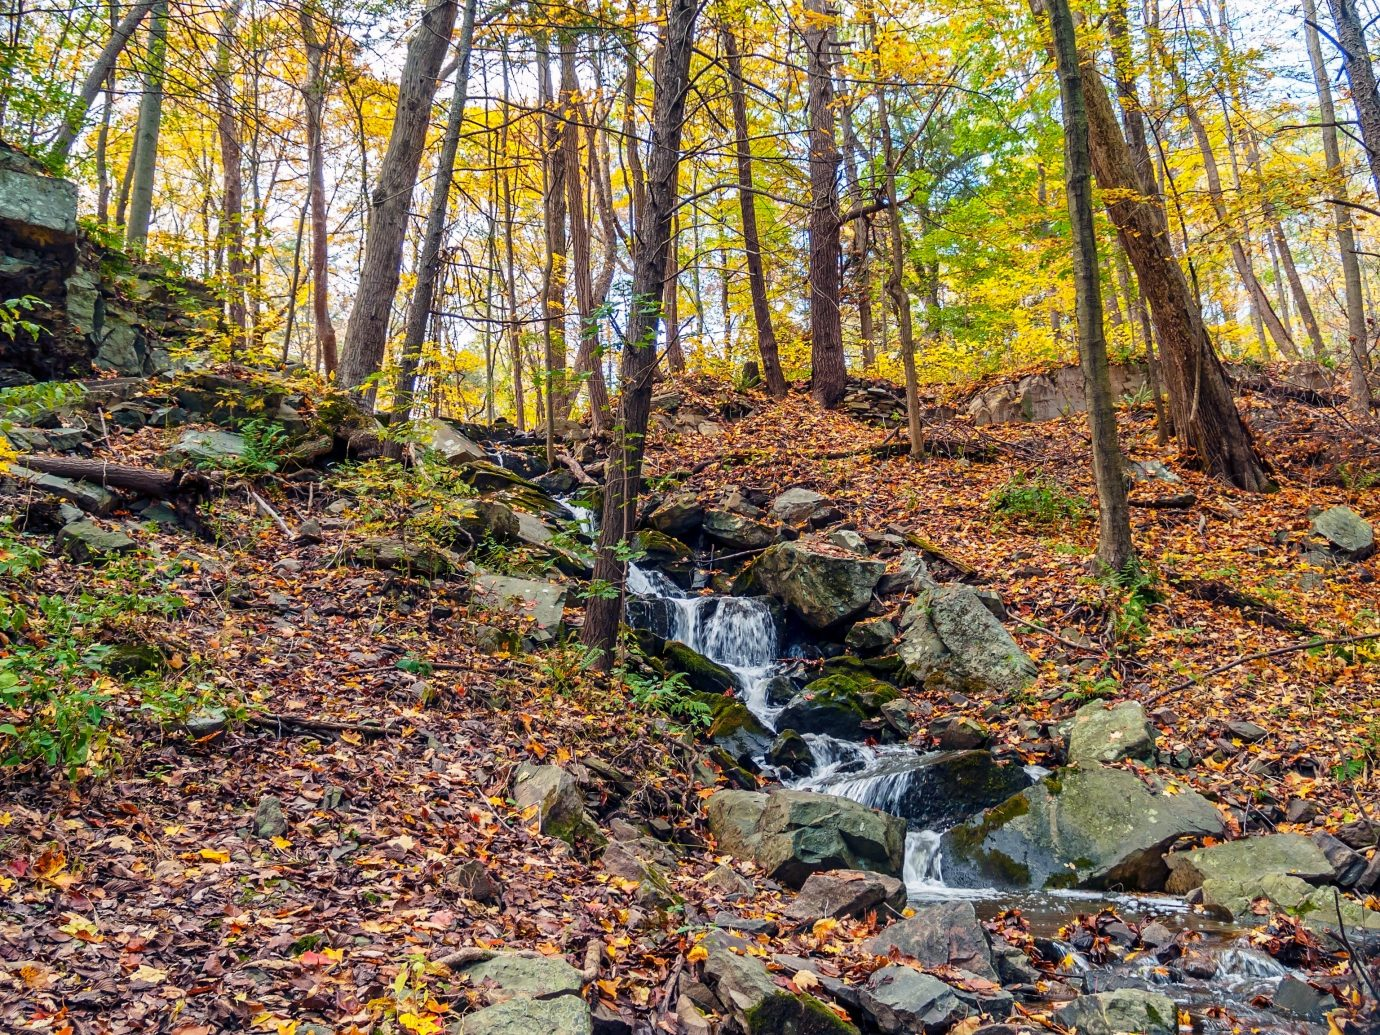 Outdoors + Adventure Road Trips Trip Ideas tree outdoor grass Forest wood Nature leaf wooded vegetation water autumn deciduous woodland plant stream area landscape state park rock old growth forest surrounded lush